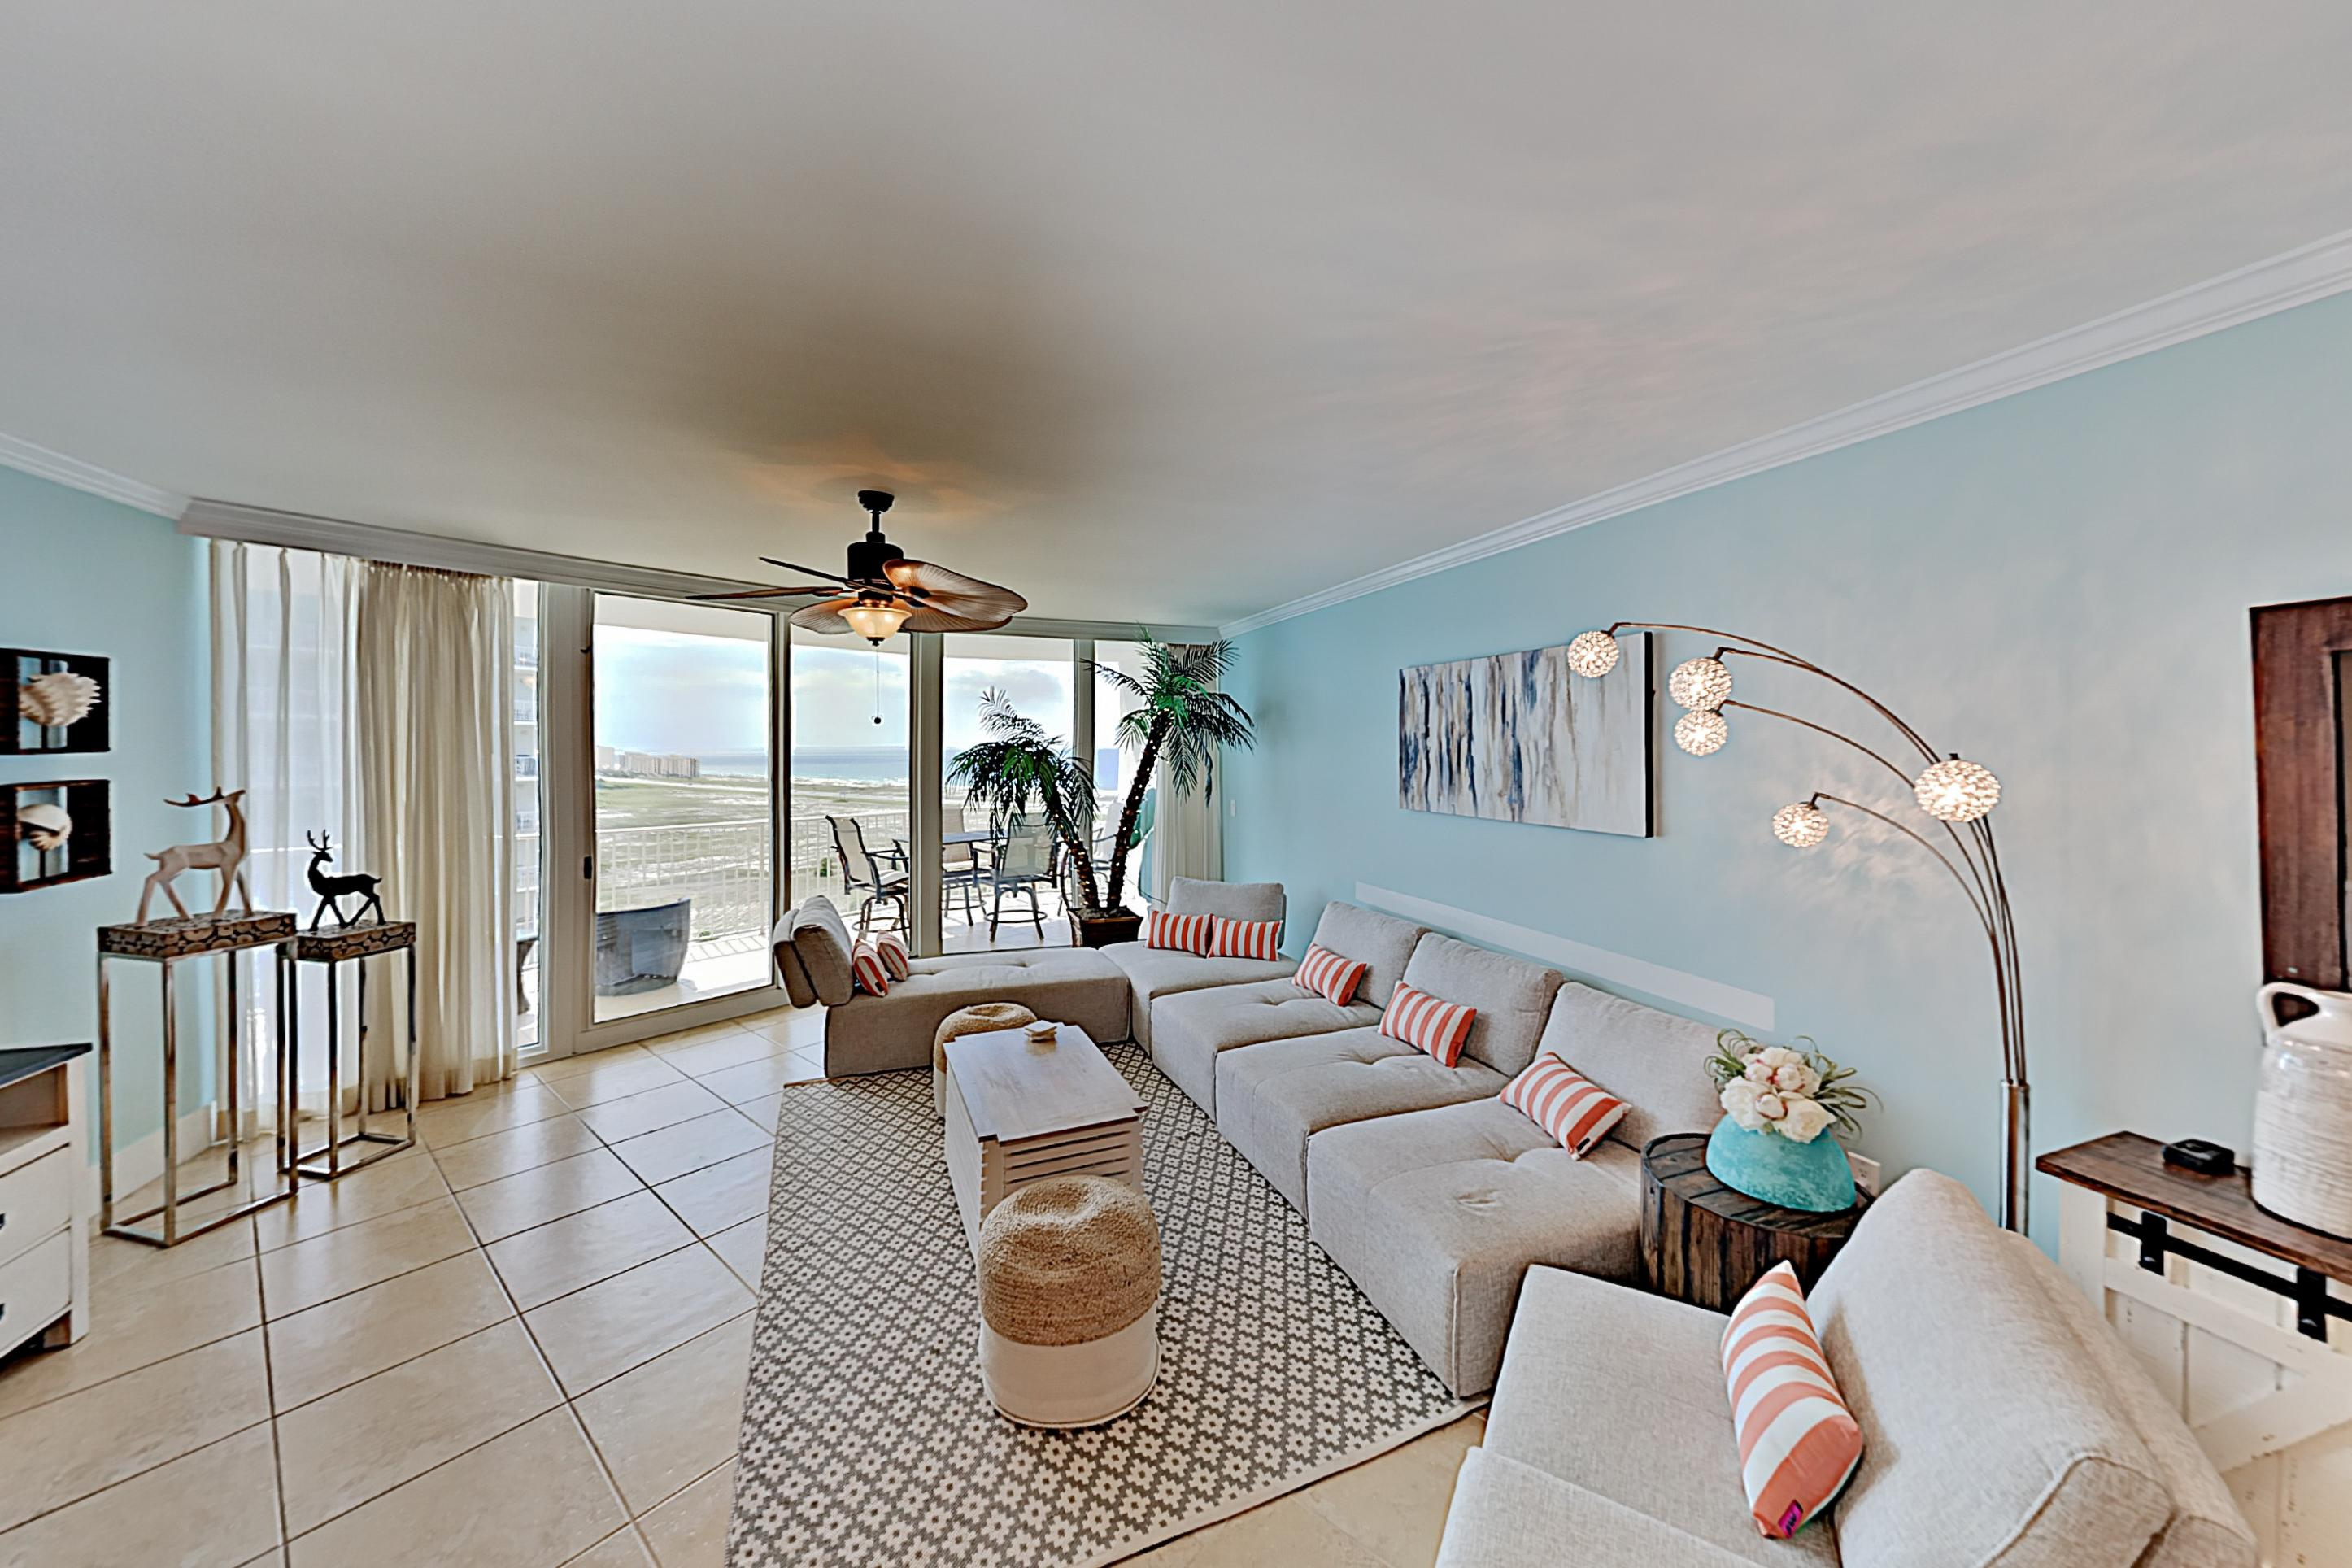 Property Image 2 - Modern Gulf View Condo with Lazy River, Sauna & Tennis